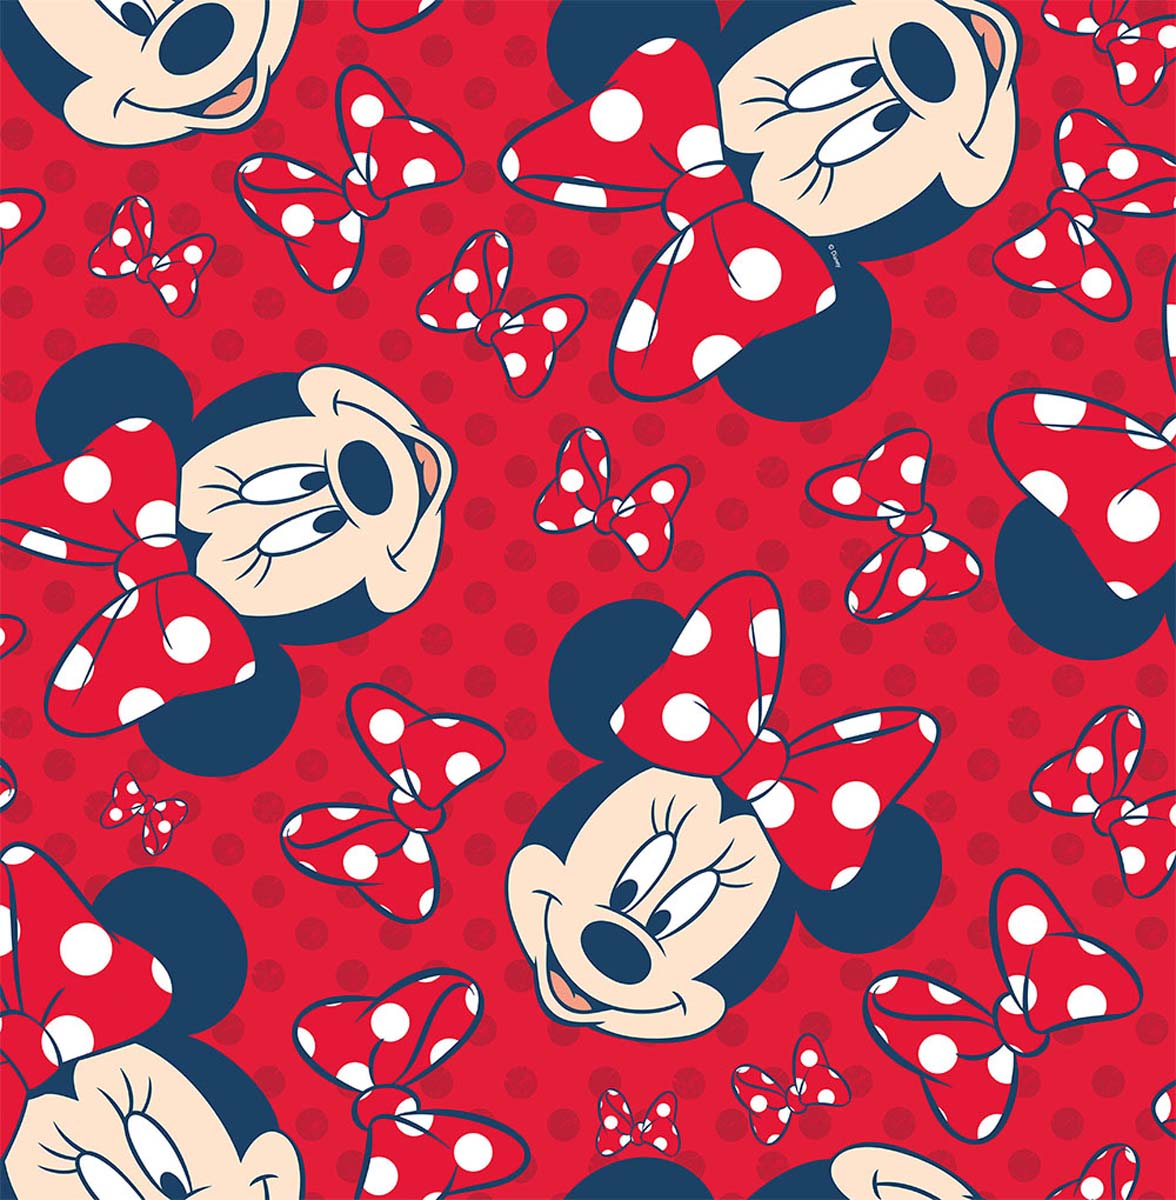 Red Minnie Mouse Wallpaper New Mickey Wallcovering